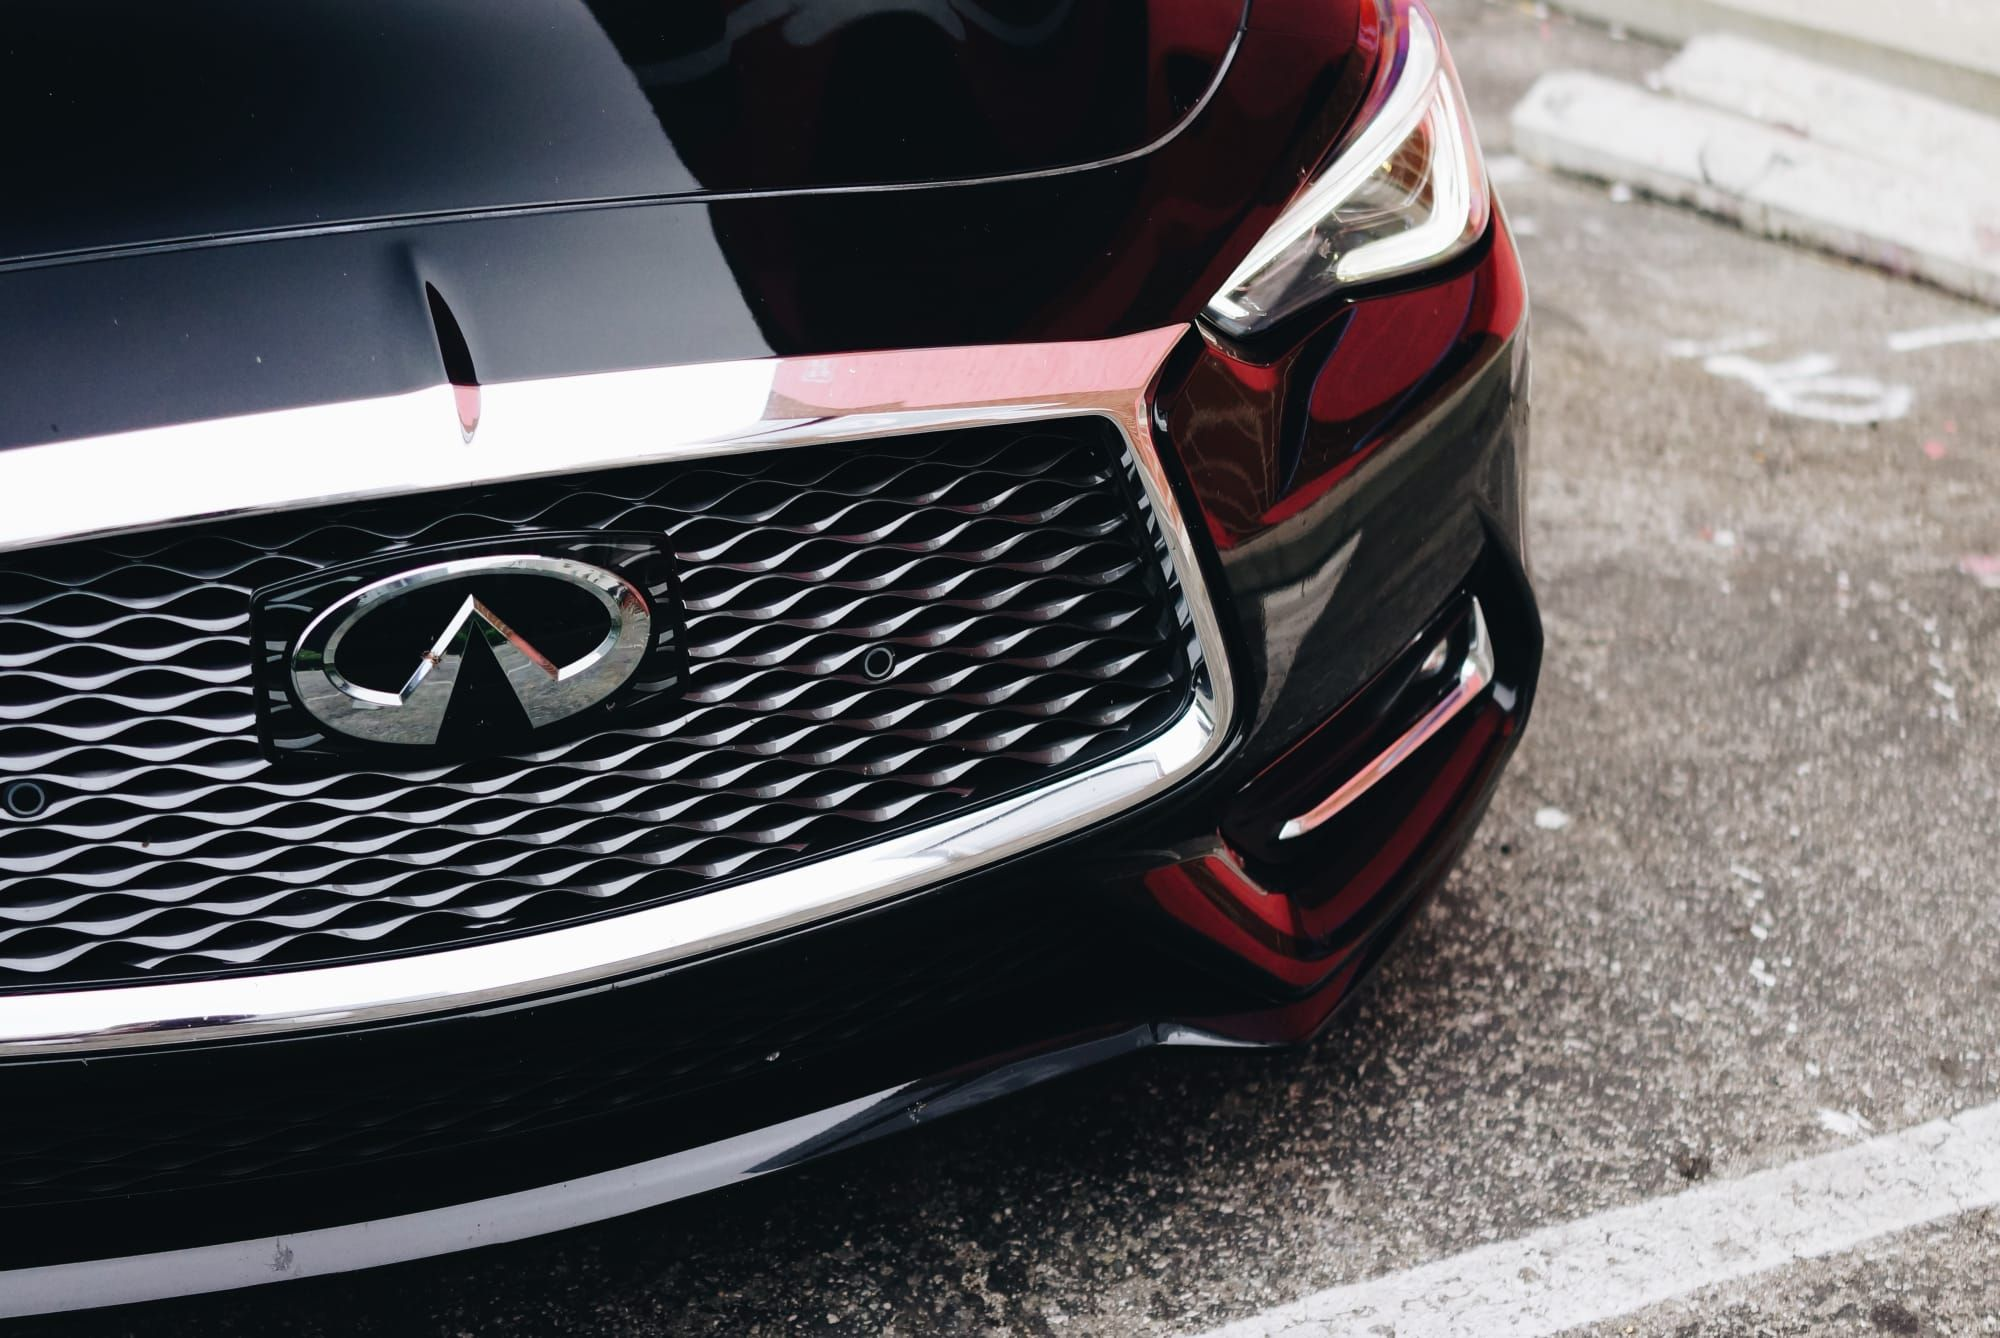 Infiniti S Q60 Red Sport Points Their Performance Line In The Right Direction In 2020 Infiniti Sports Infiniti Q50 Sport